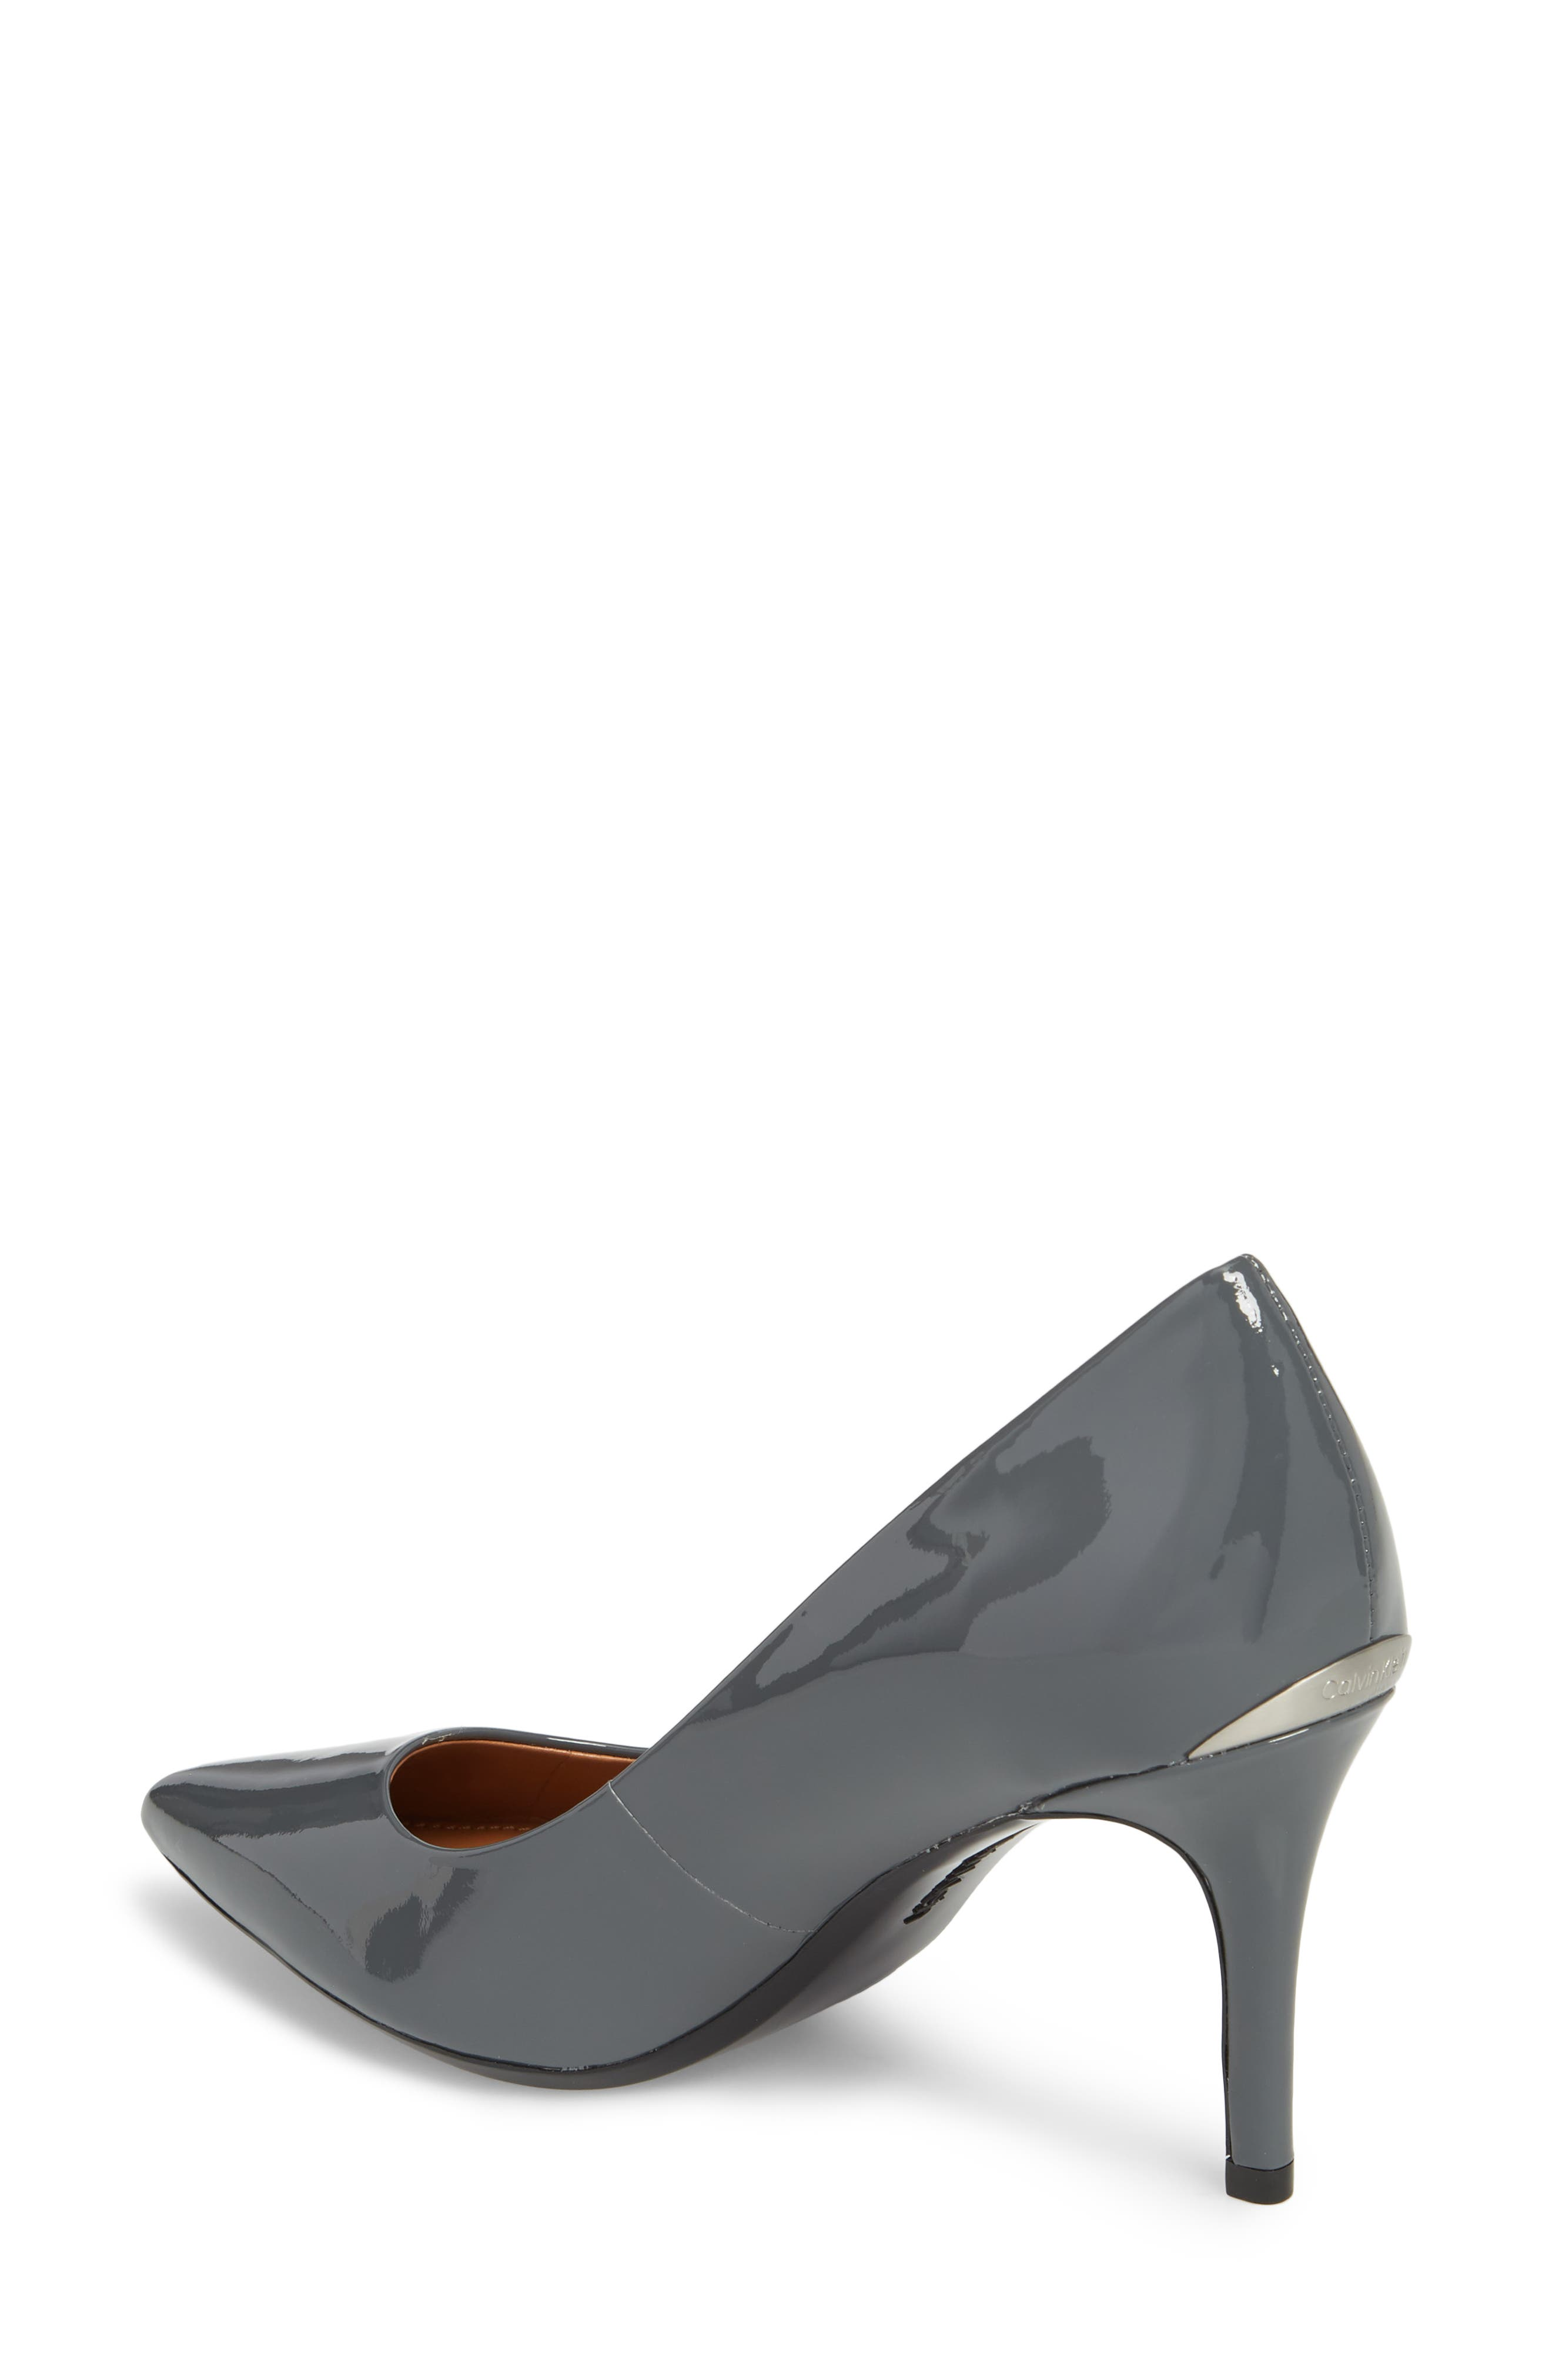 'Gayle' Pointy Toe Pump,                             Alternate thumbnail 2, color,                             STEEL GREYSTONE LEATHER